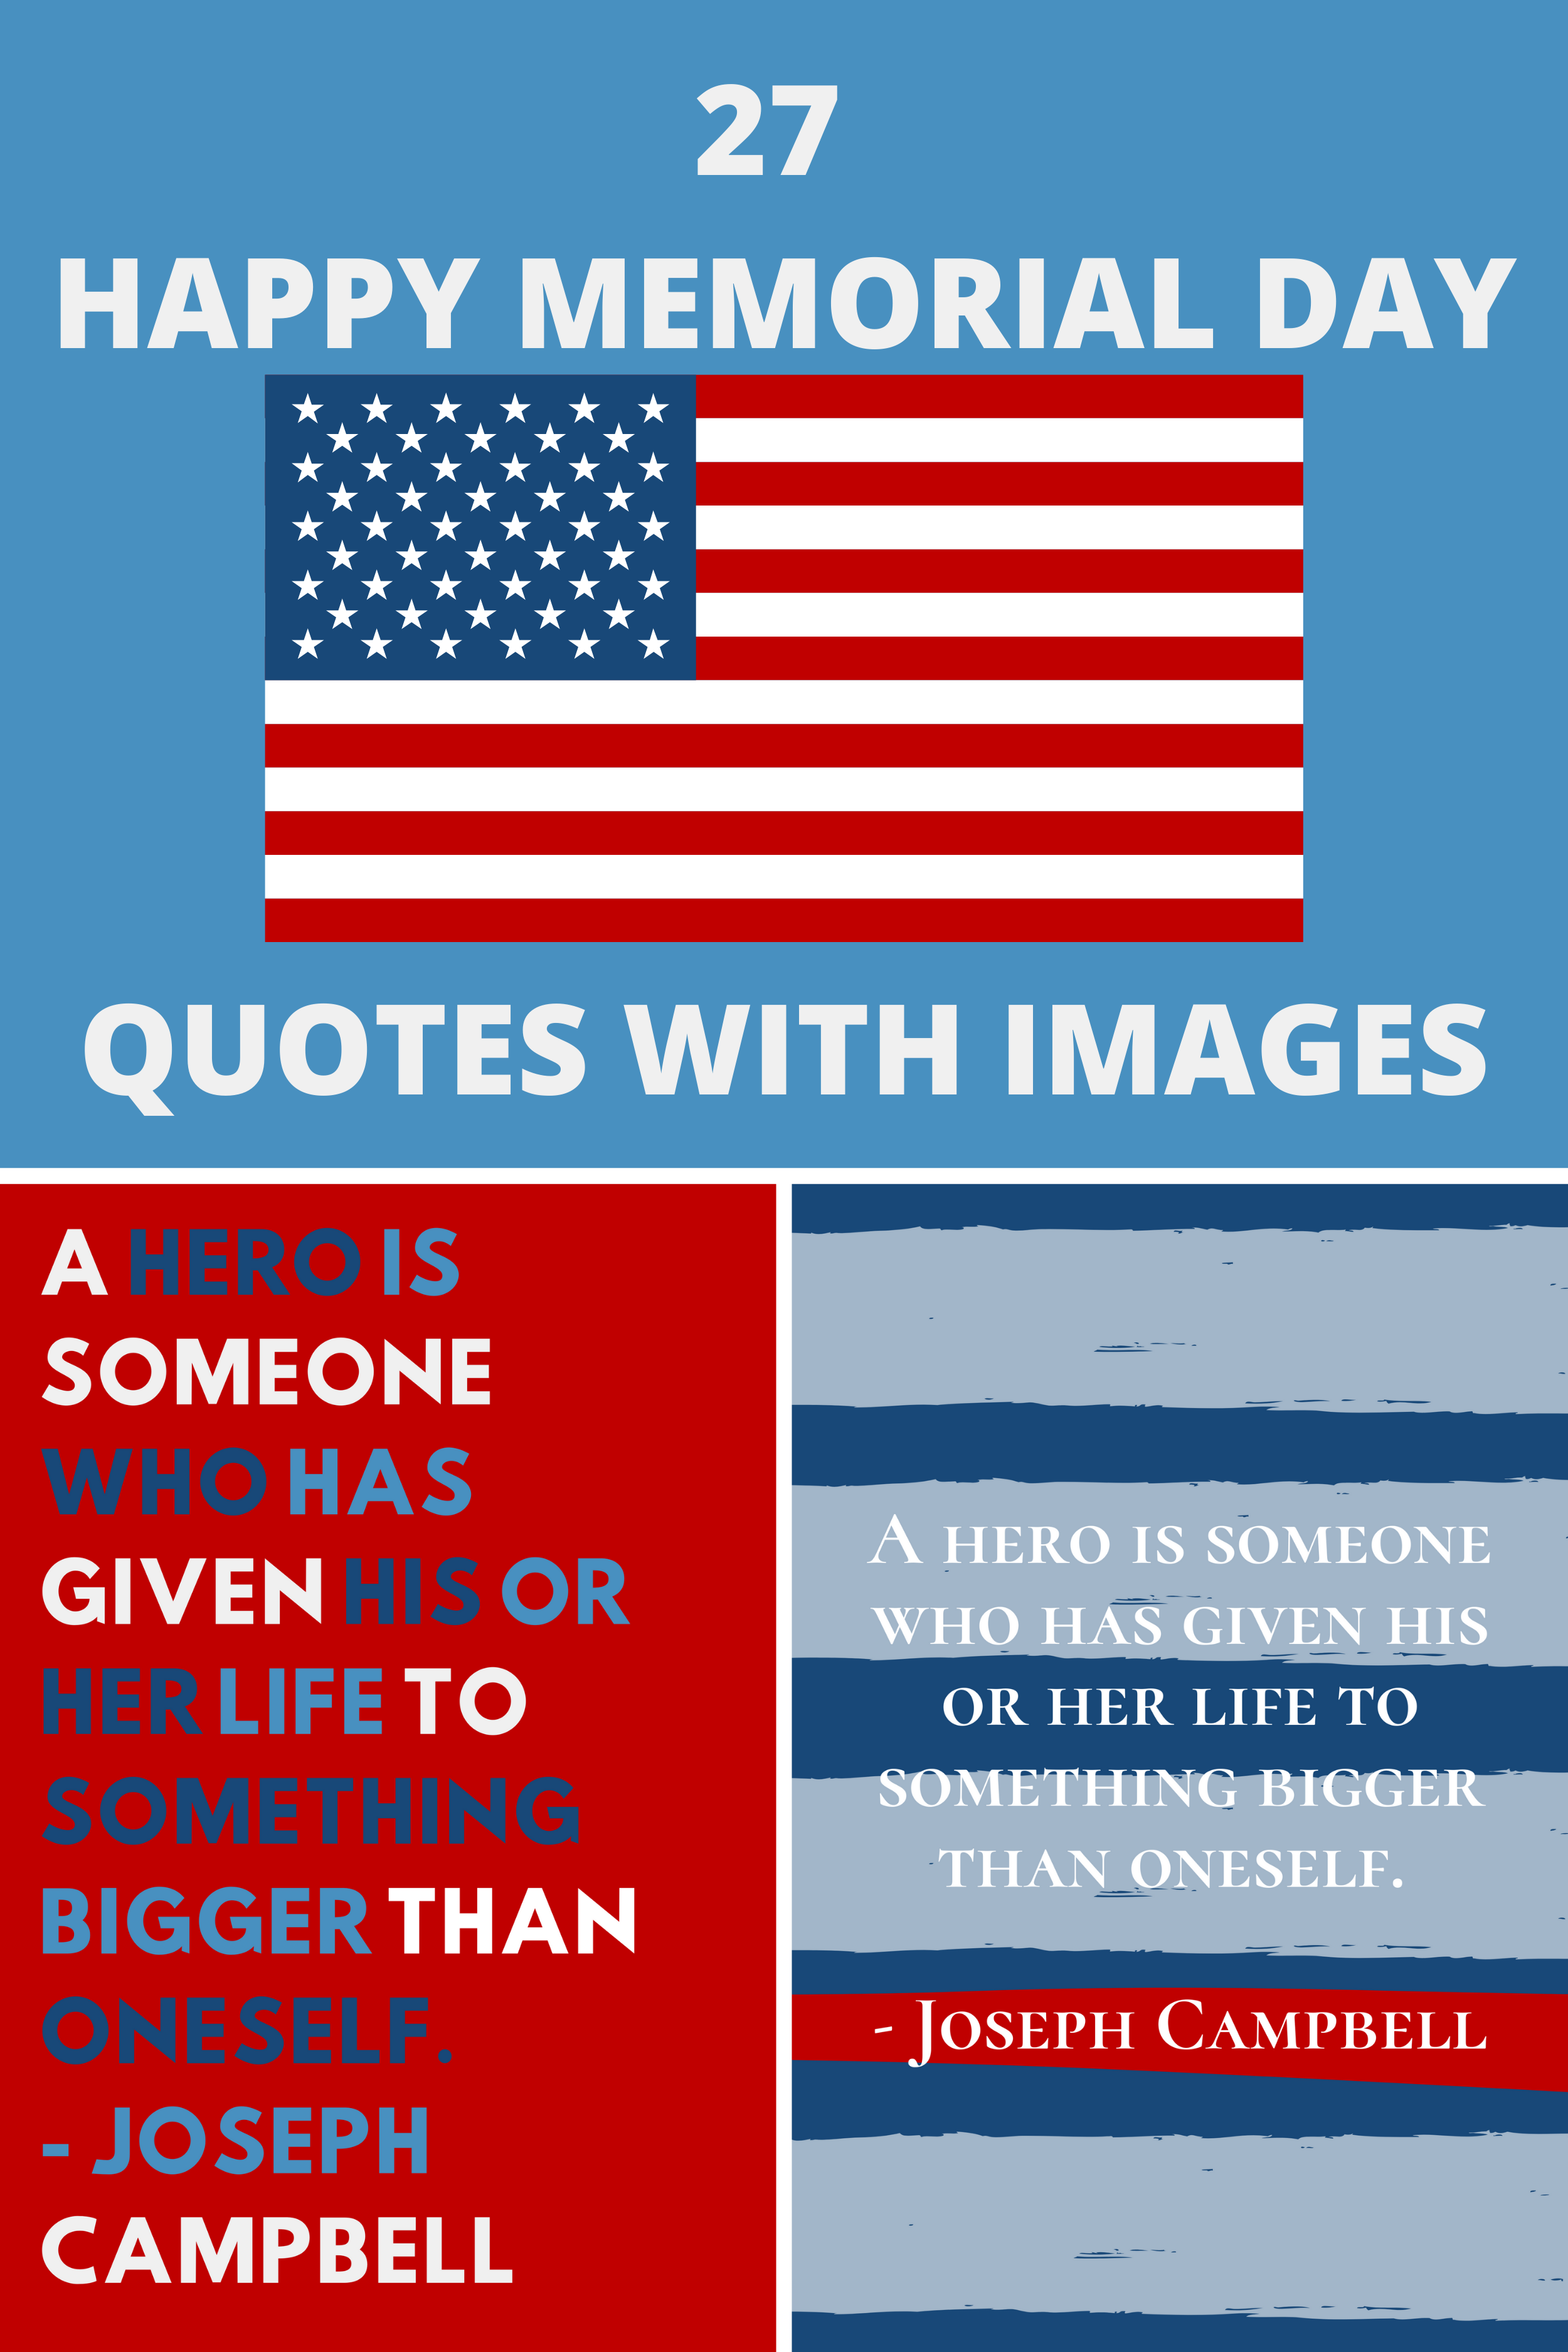 Happy Memorial Day Quotes with Images